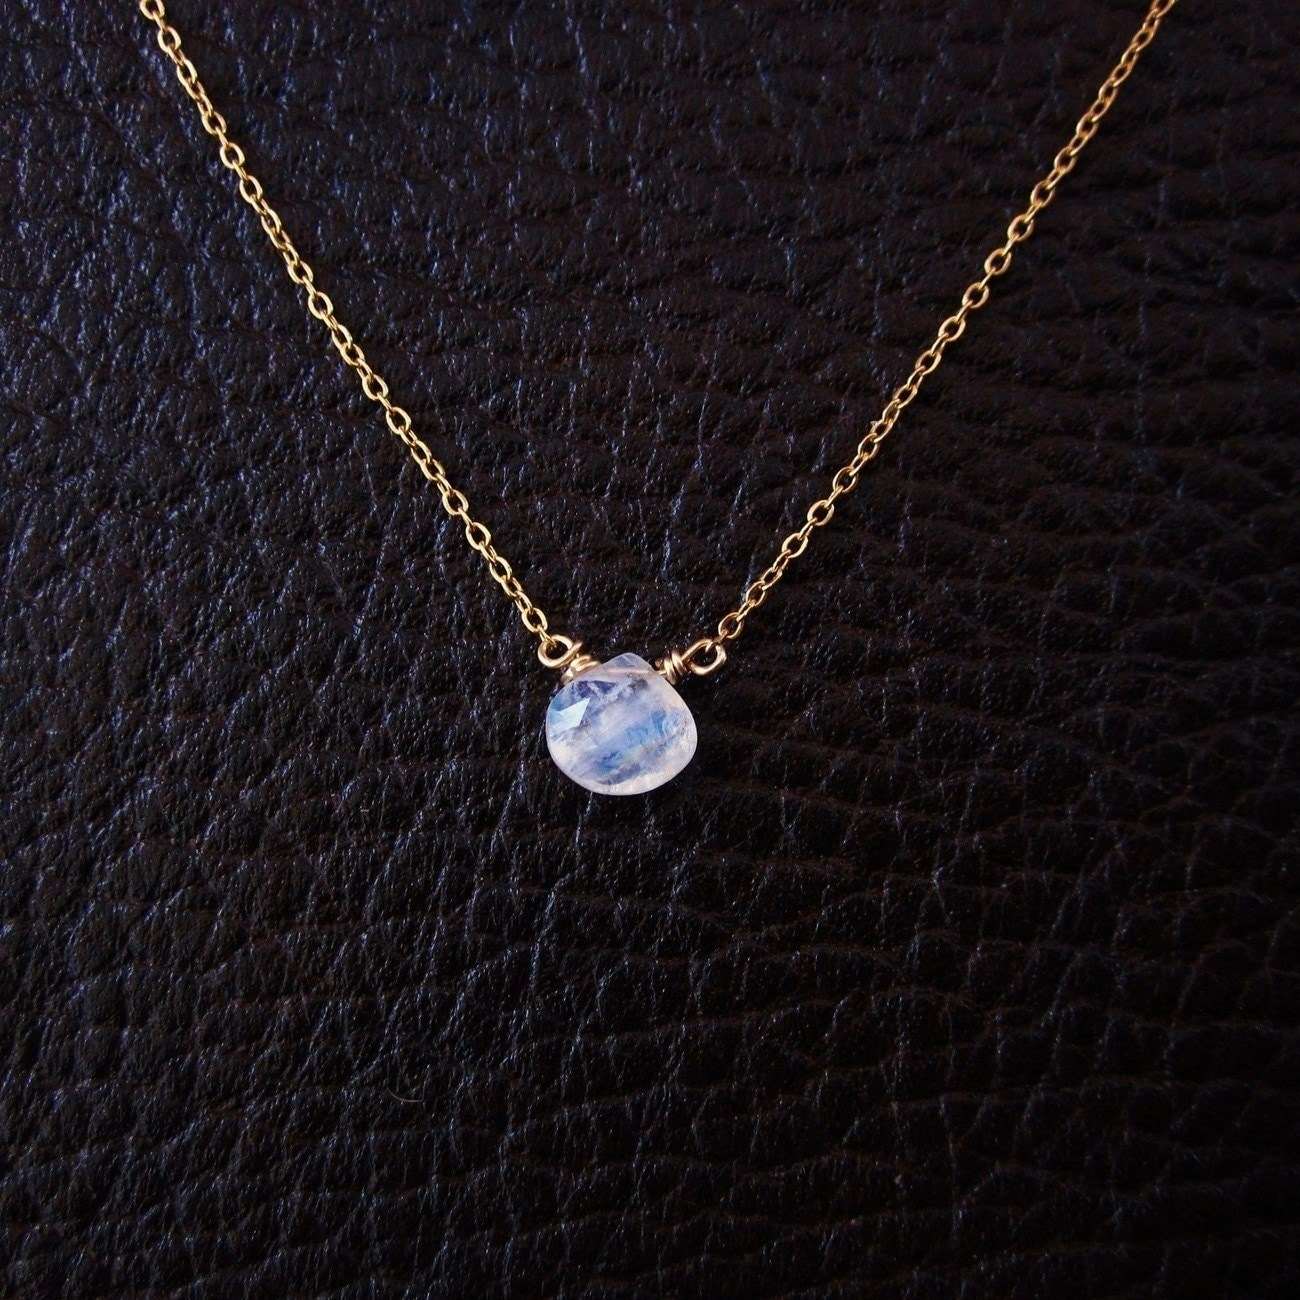 moonstone necklace moonstone pendant charm necklace